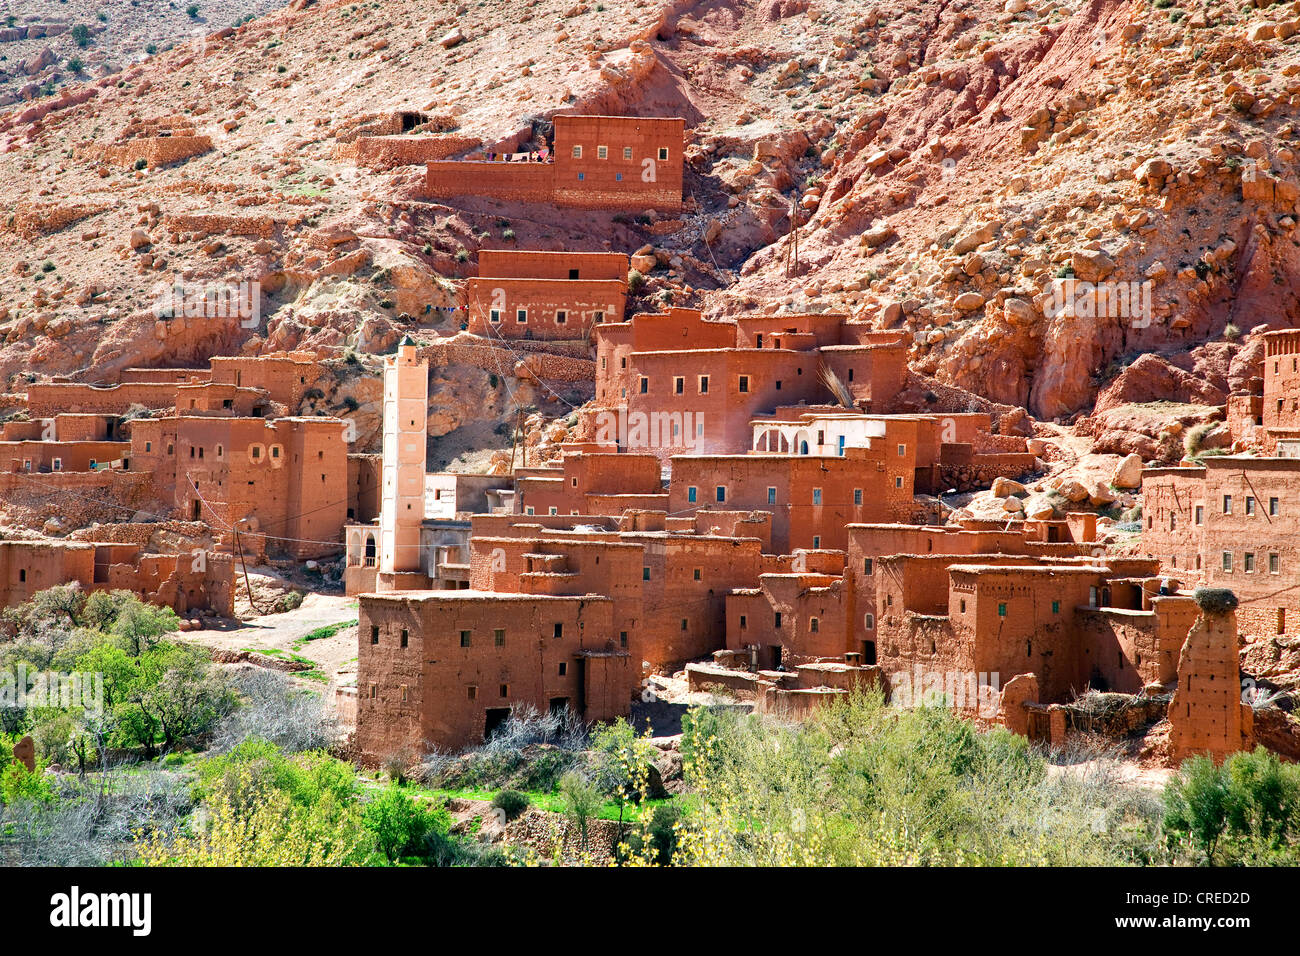 Berber village with traditional mud-brick houses, Telouet, Ounila Valley, High Atlas Mountains, Morocco, Africa Stock Photo